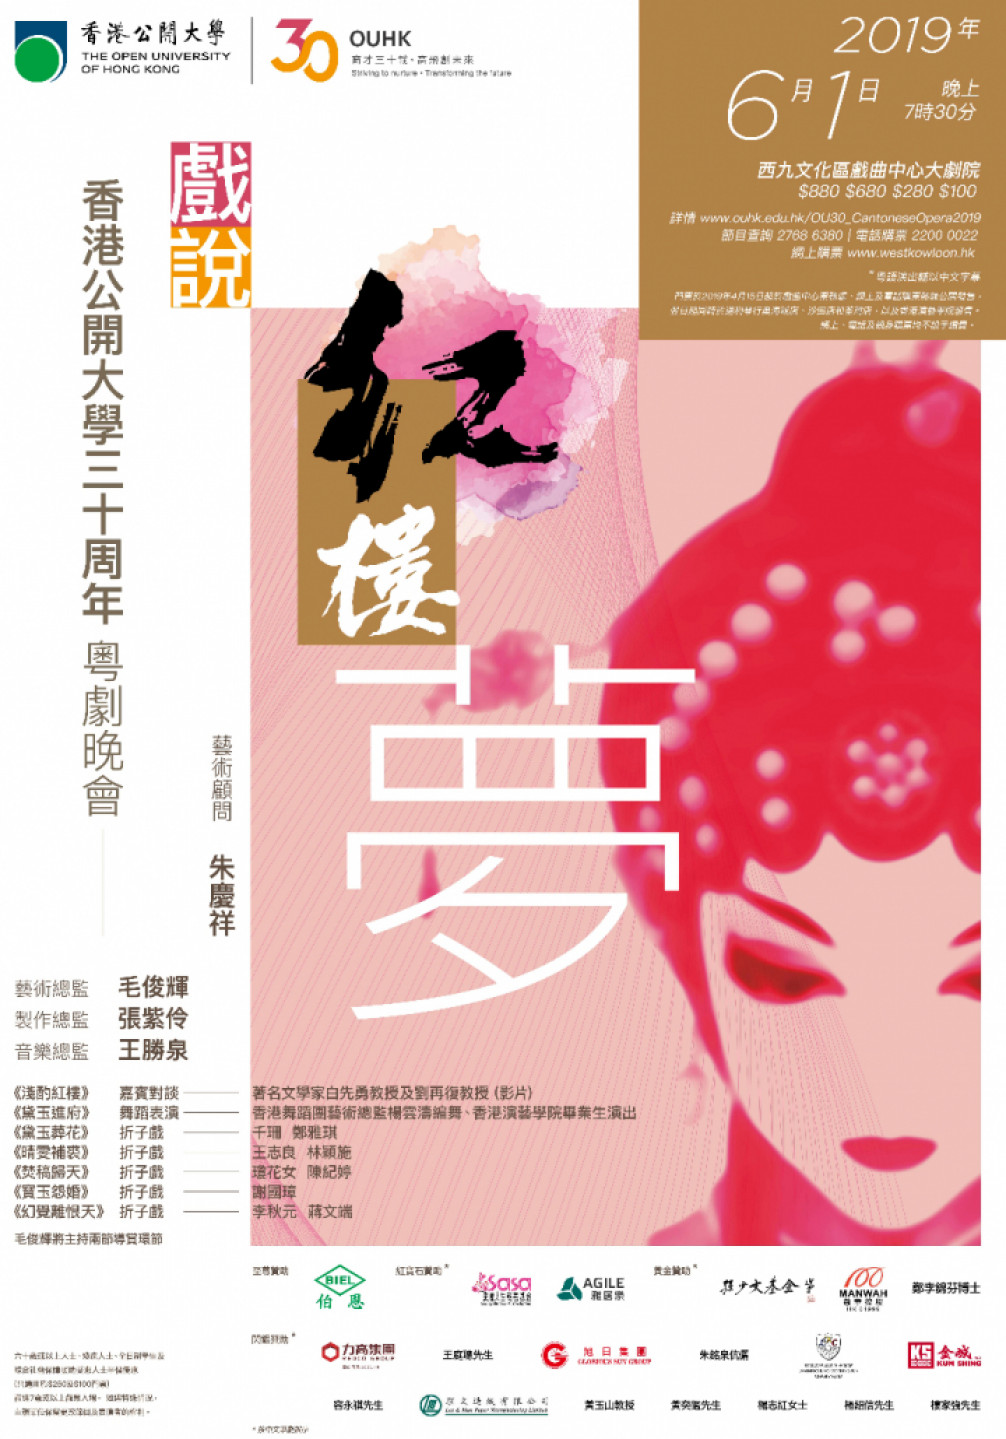 """OUHK 30th Anniversary Cantonese Opera Concert on """"Dream of the Red Chamber"""""""